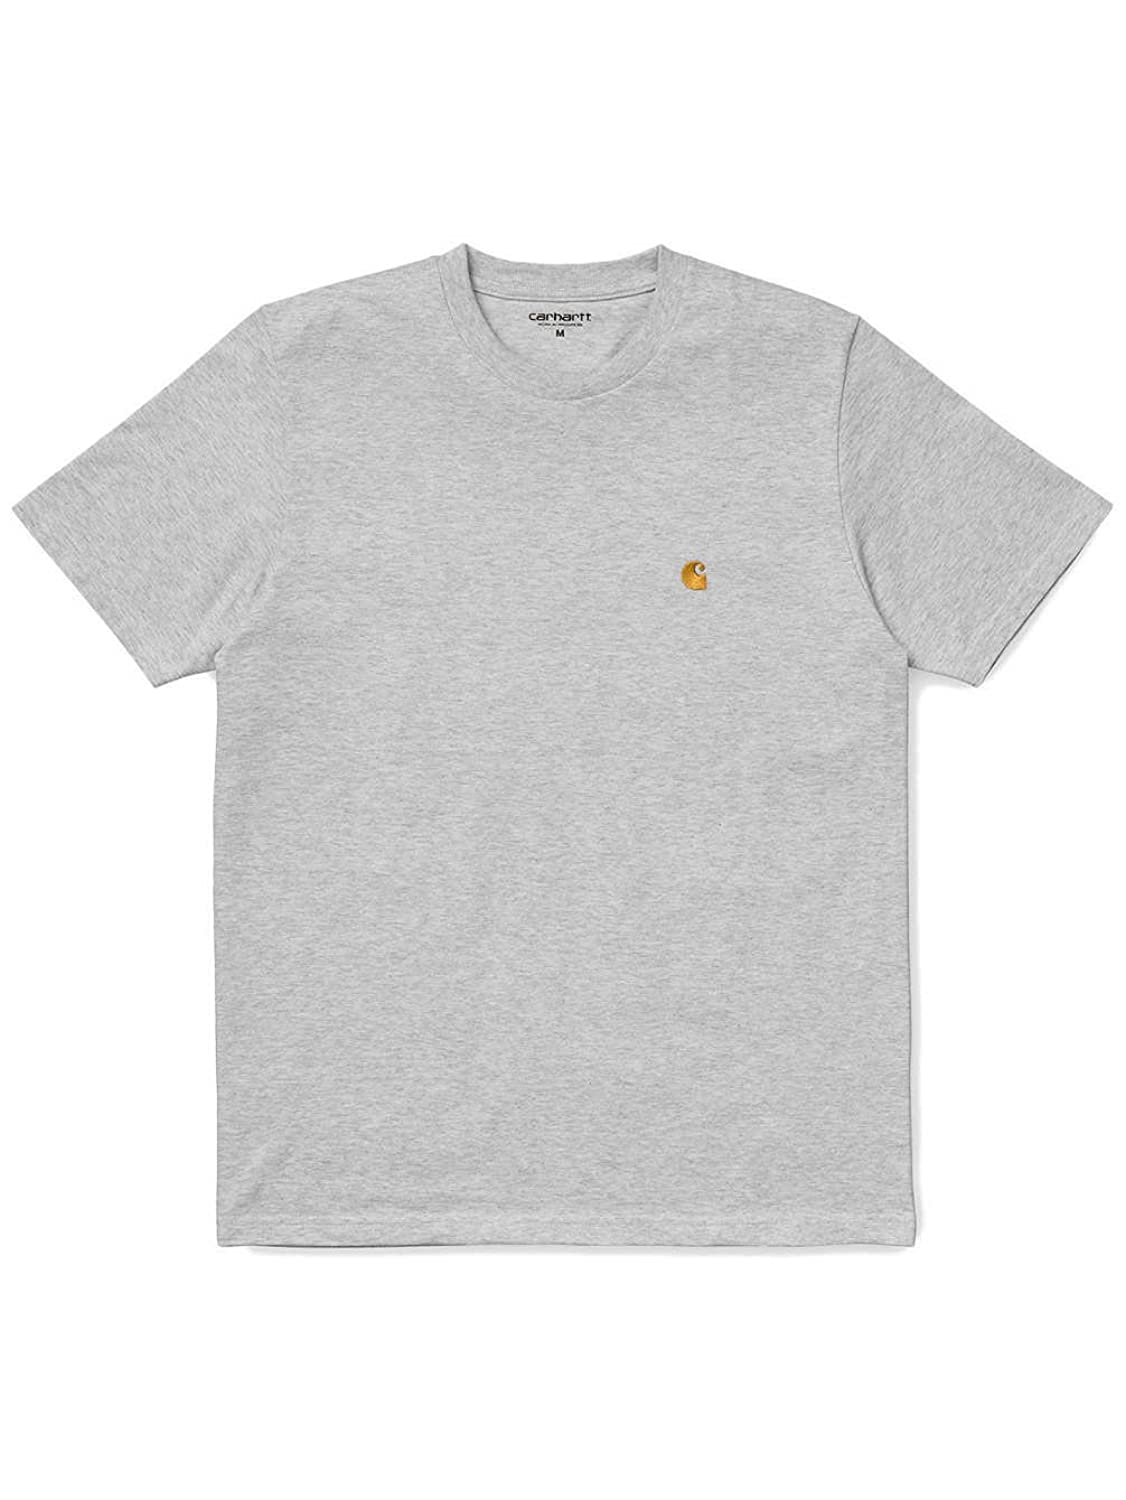 CARHARTT WIP - Crew-neck T-shirts - Men - Mottled White and Ecru Chase Round-Neck T-Shirt for men